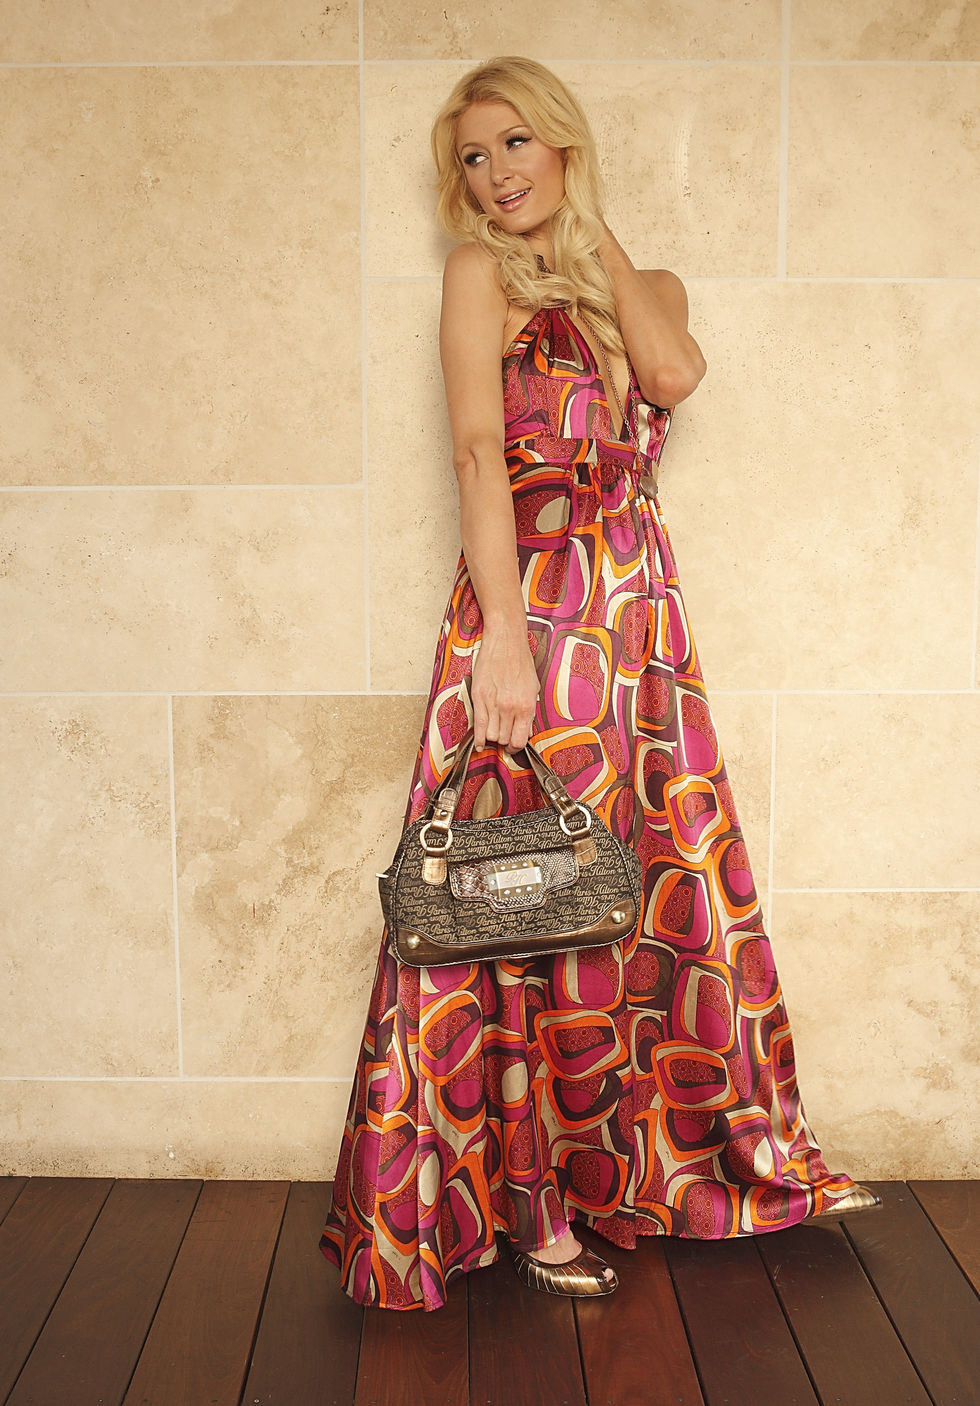 paris-hilton-portrait-session-at-thompson-beverly-hills-hotel-01